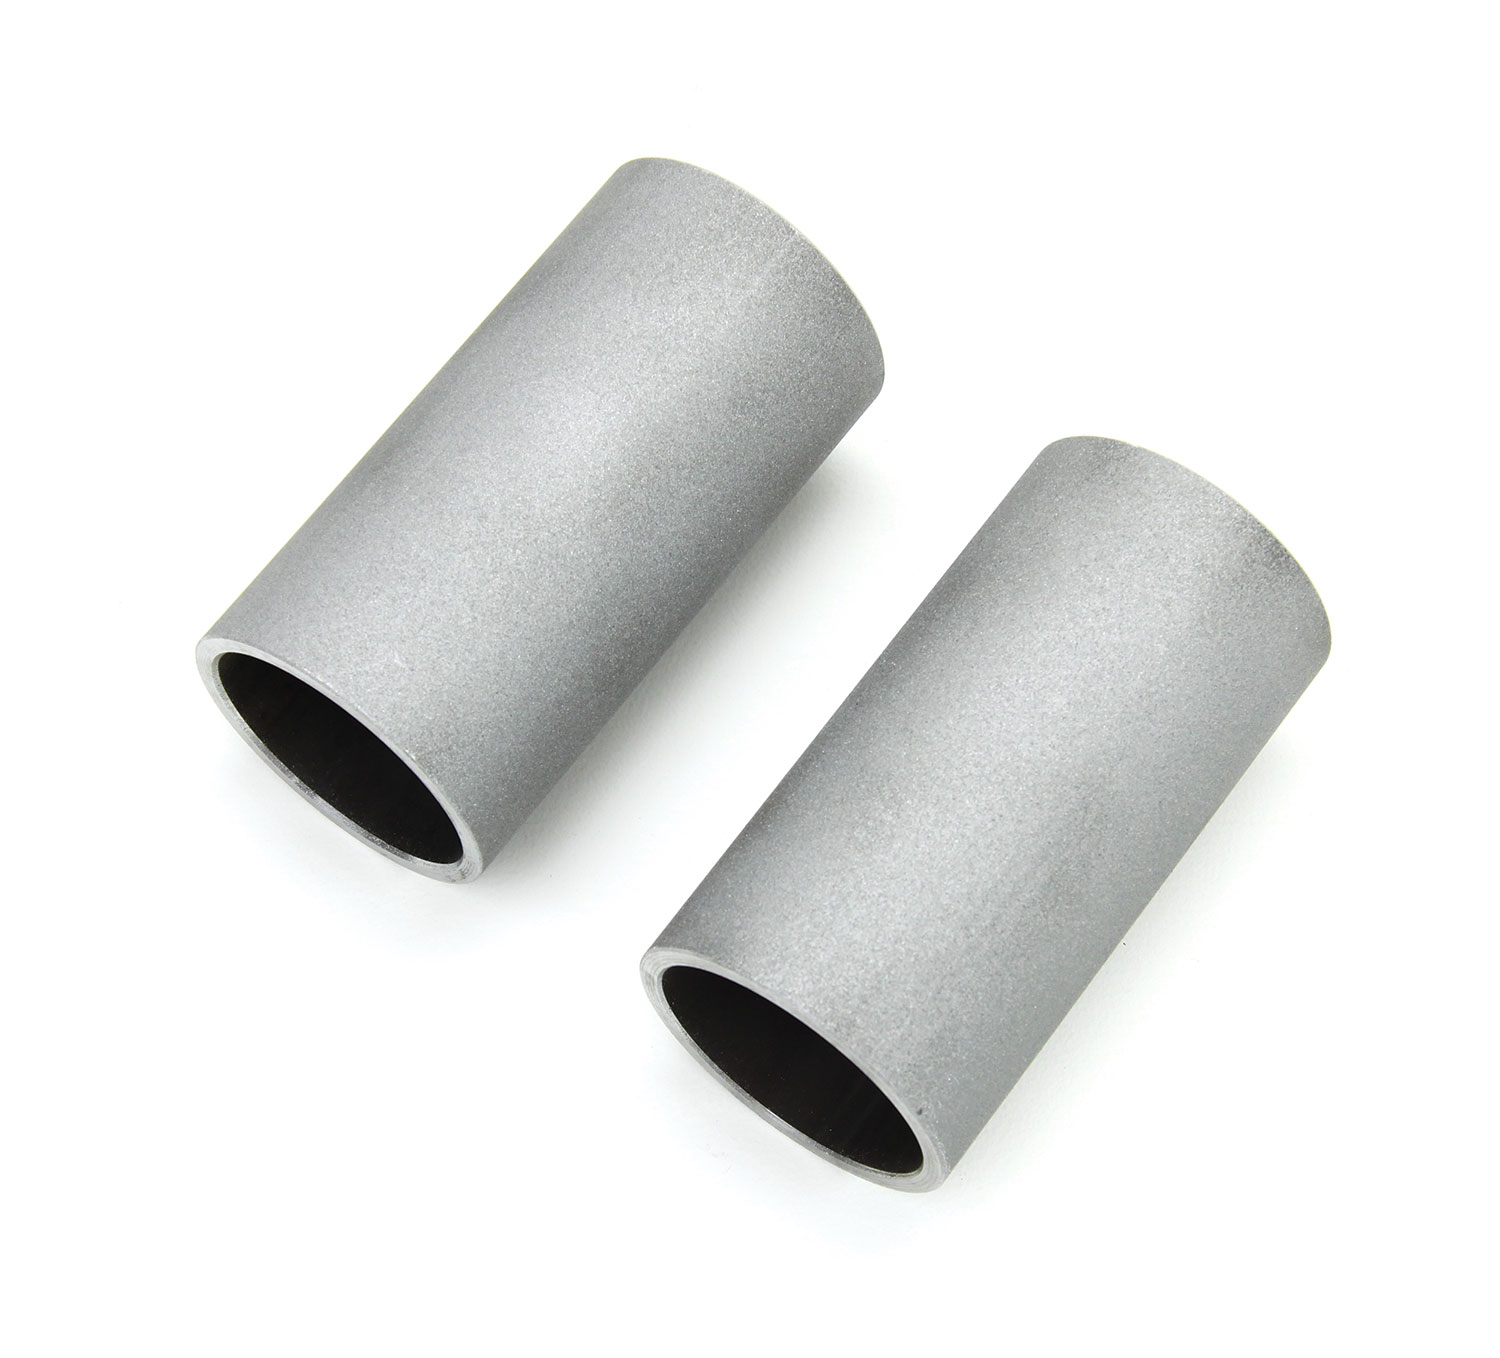 Teraflex Speedbump Mounting Sleeve Kit 4in - JK